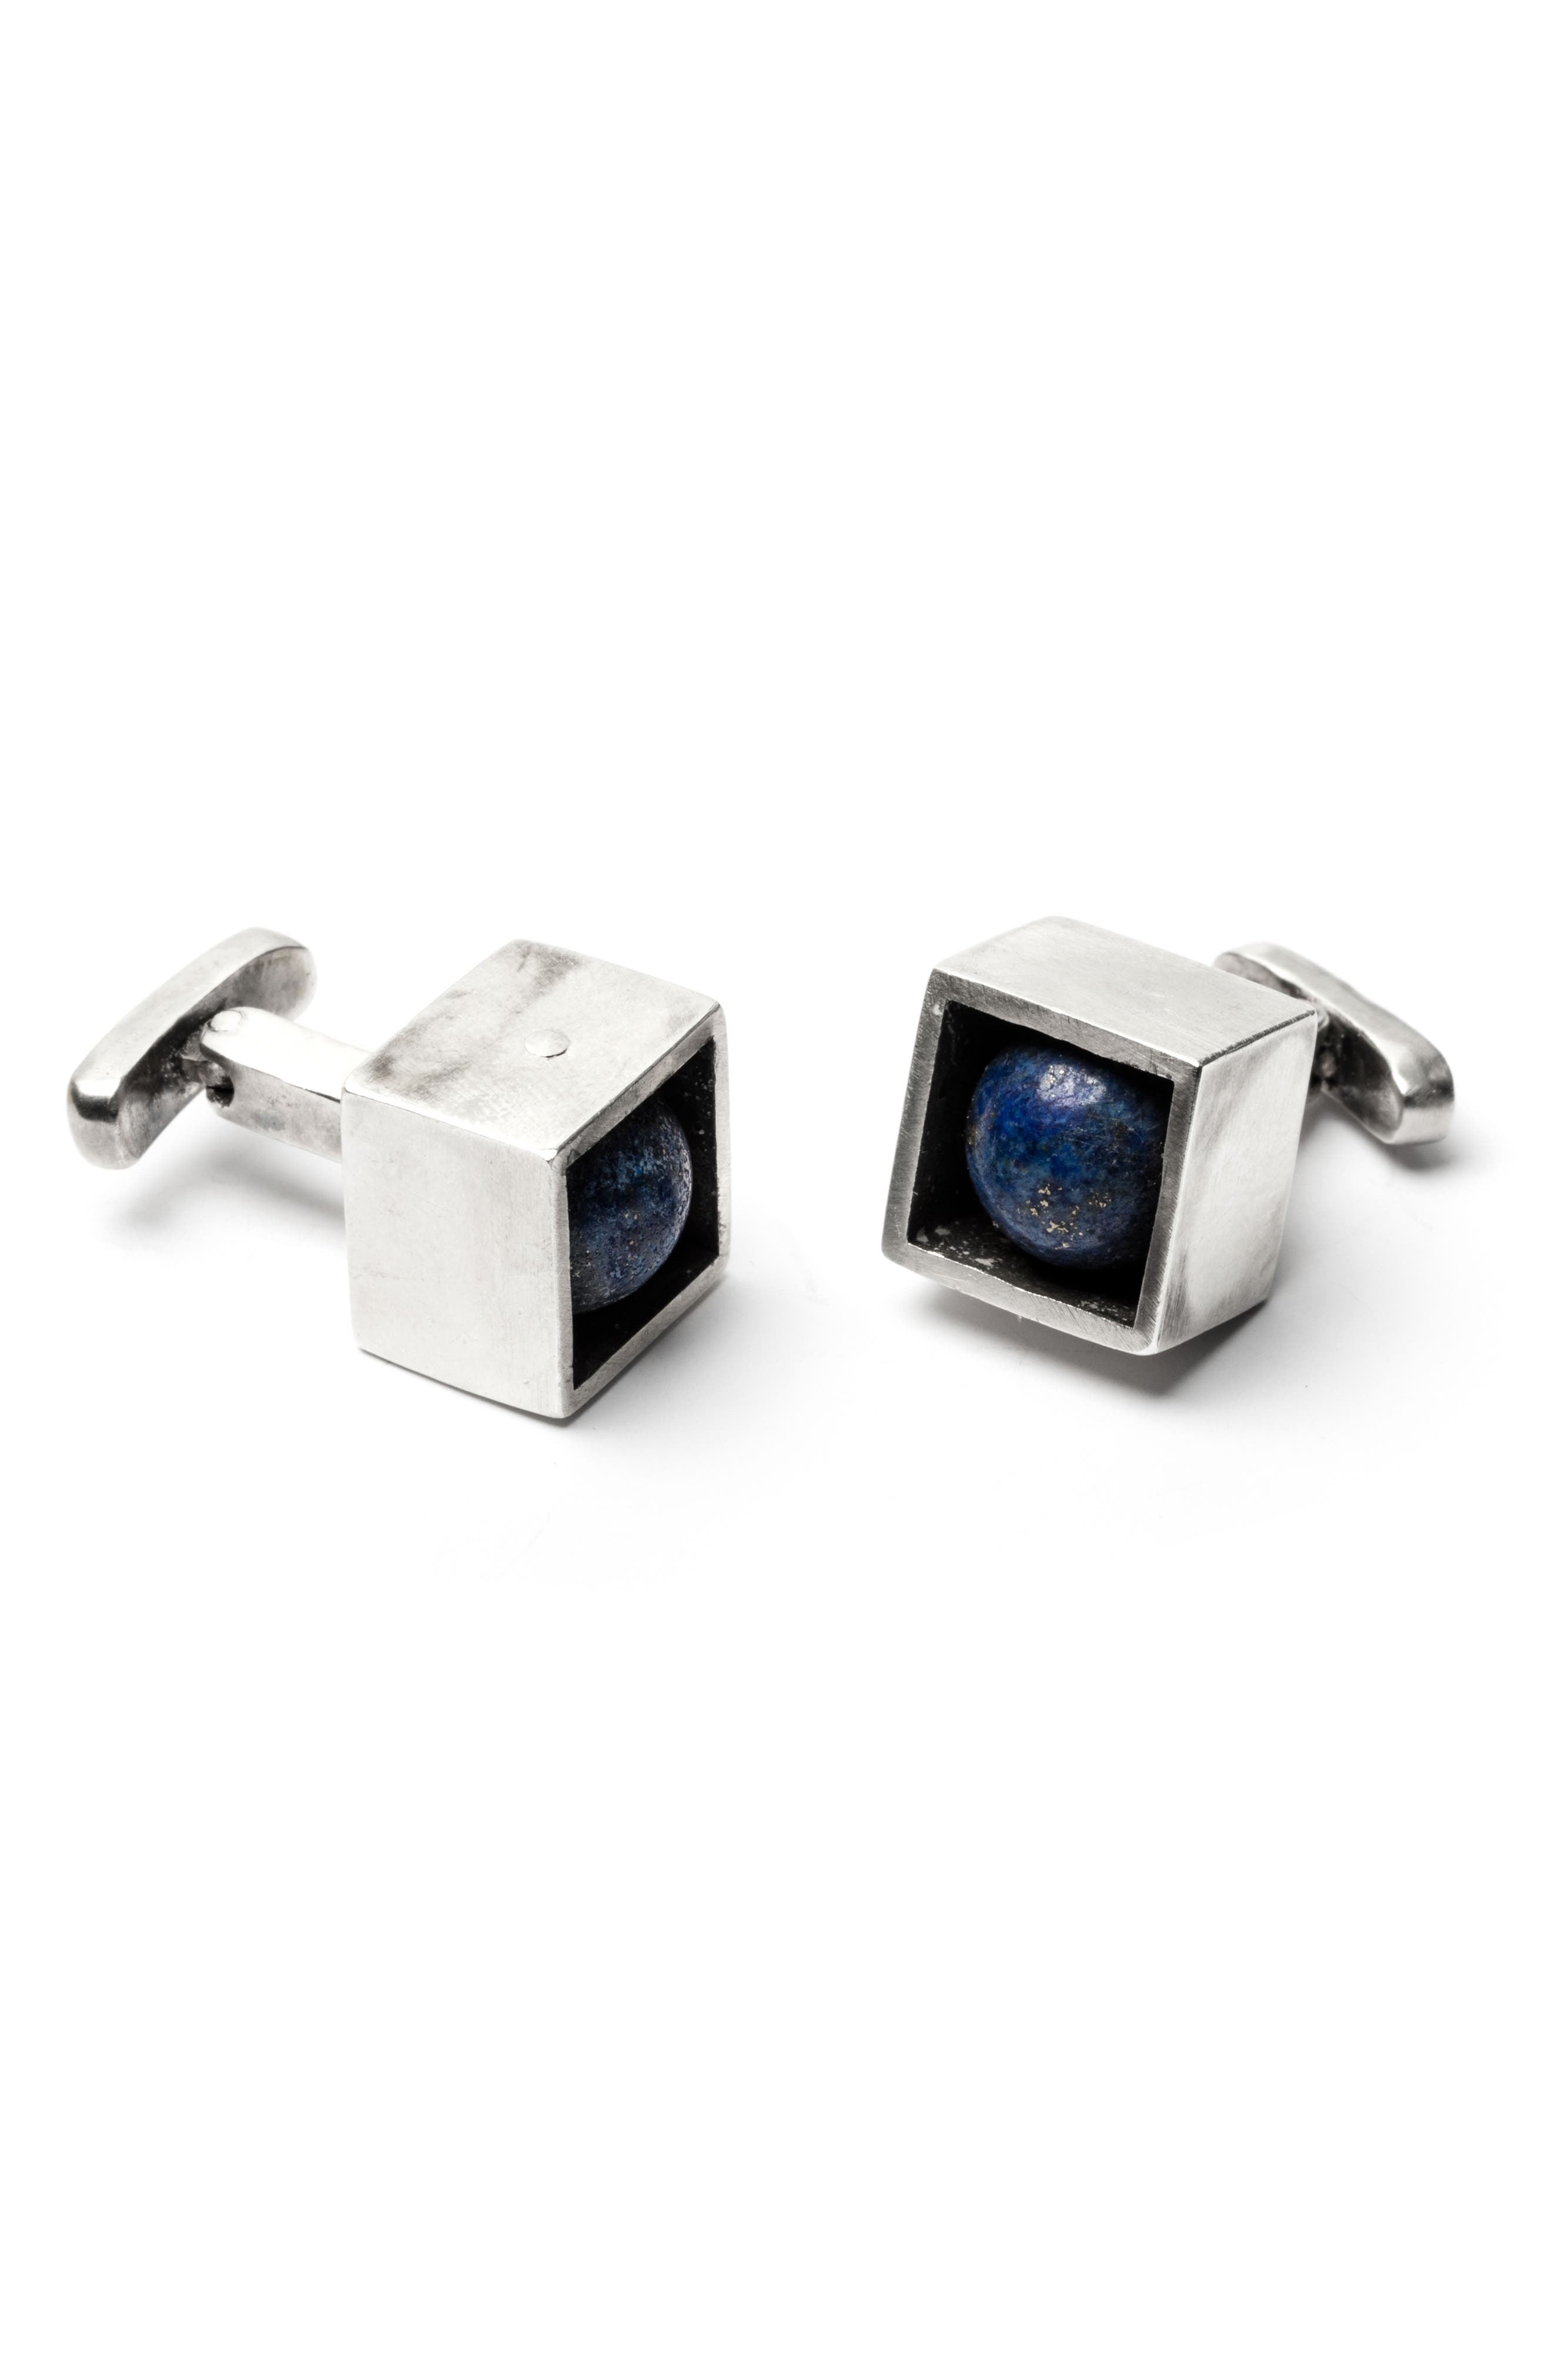 Stone in Cube Cuff Links,                             Main thumbnail 1, color,                             Silver